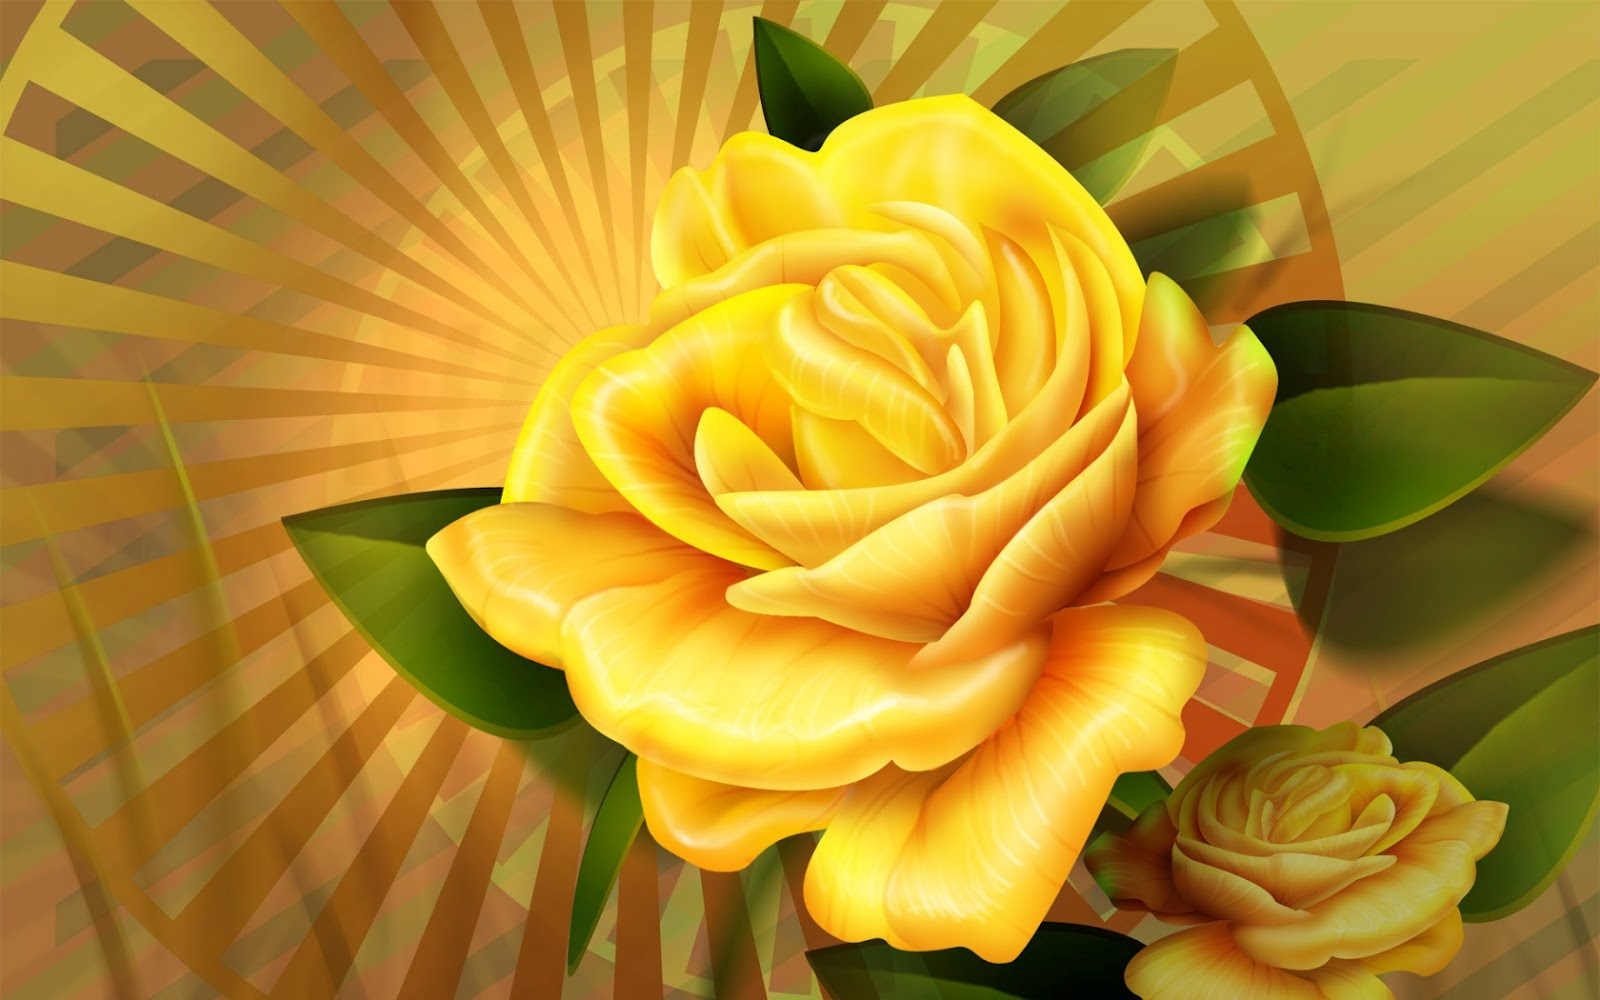 Single rose tattoo meaning meaning of different colors of